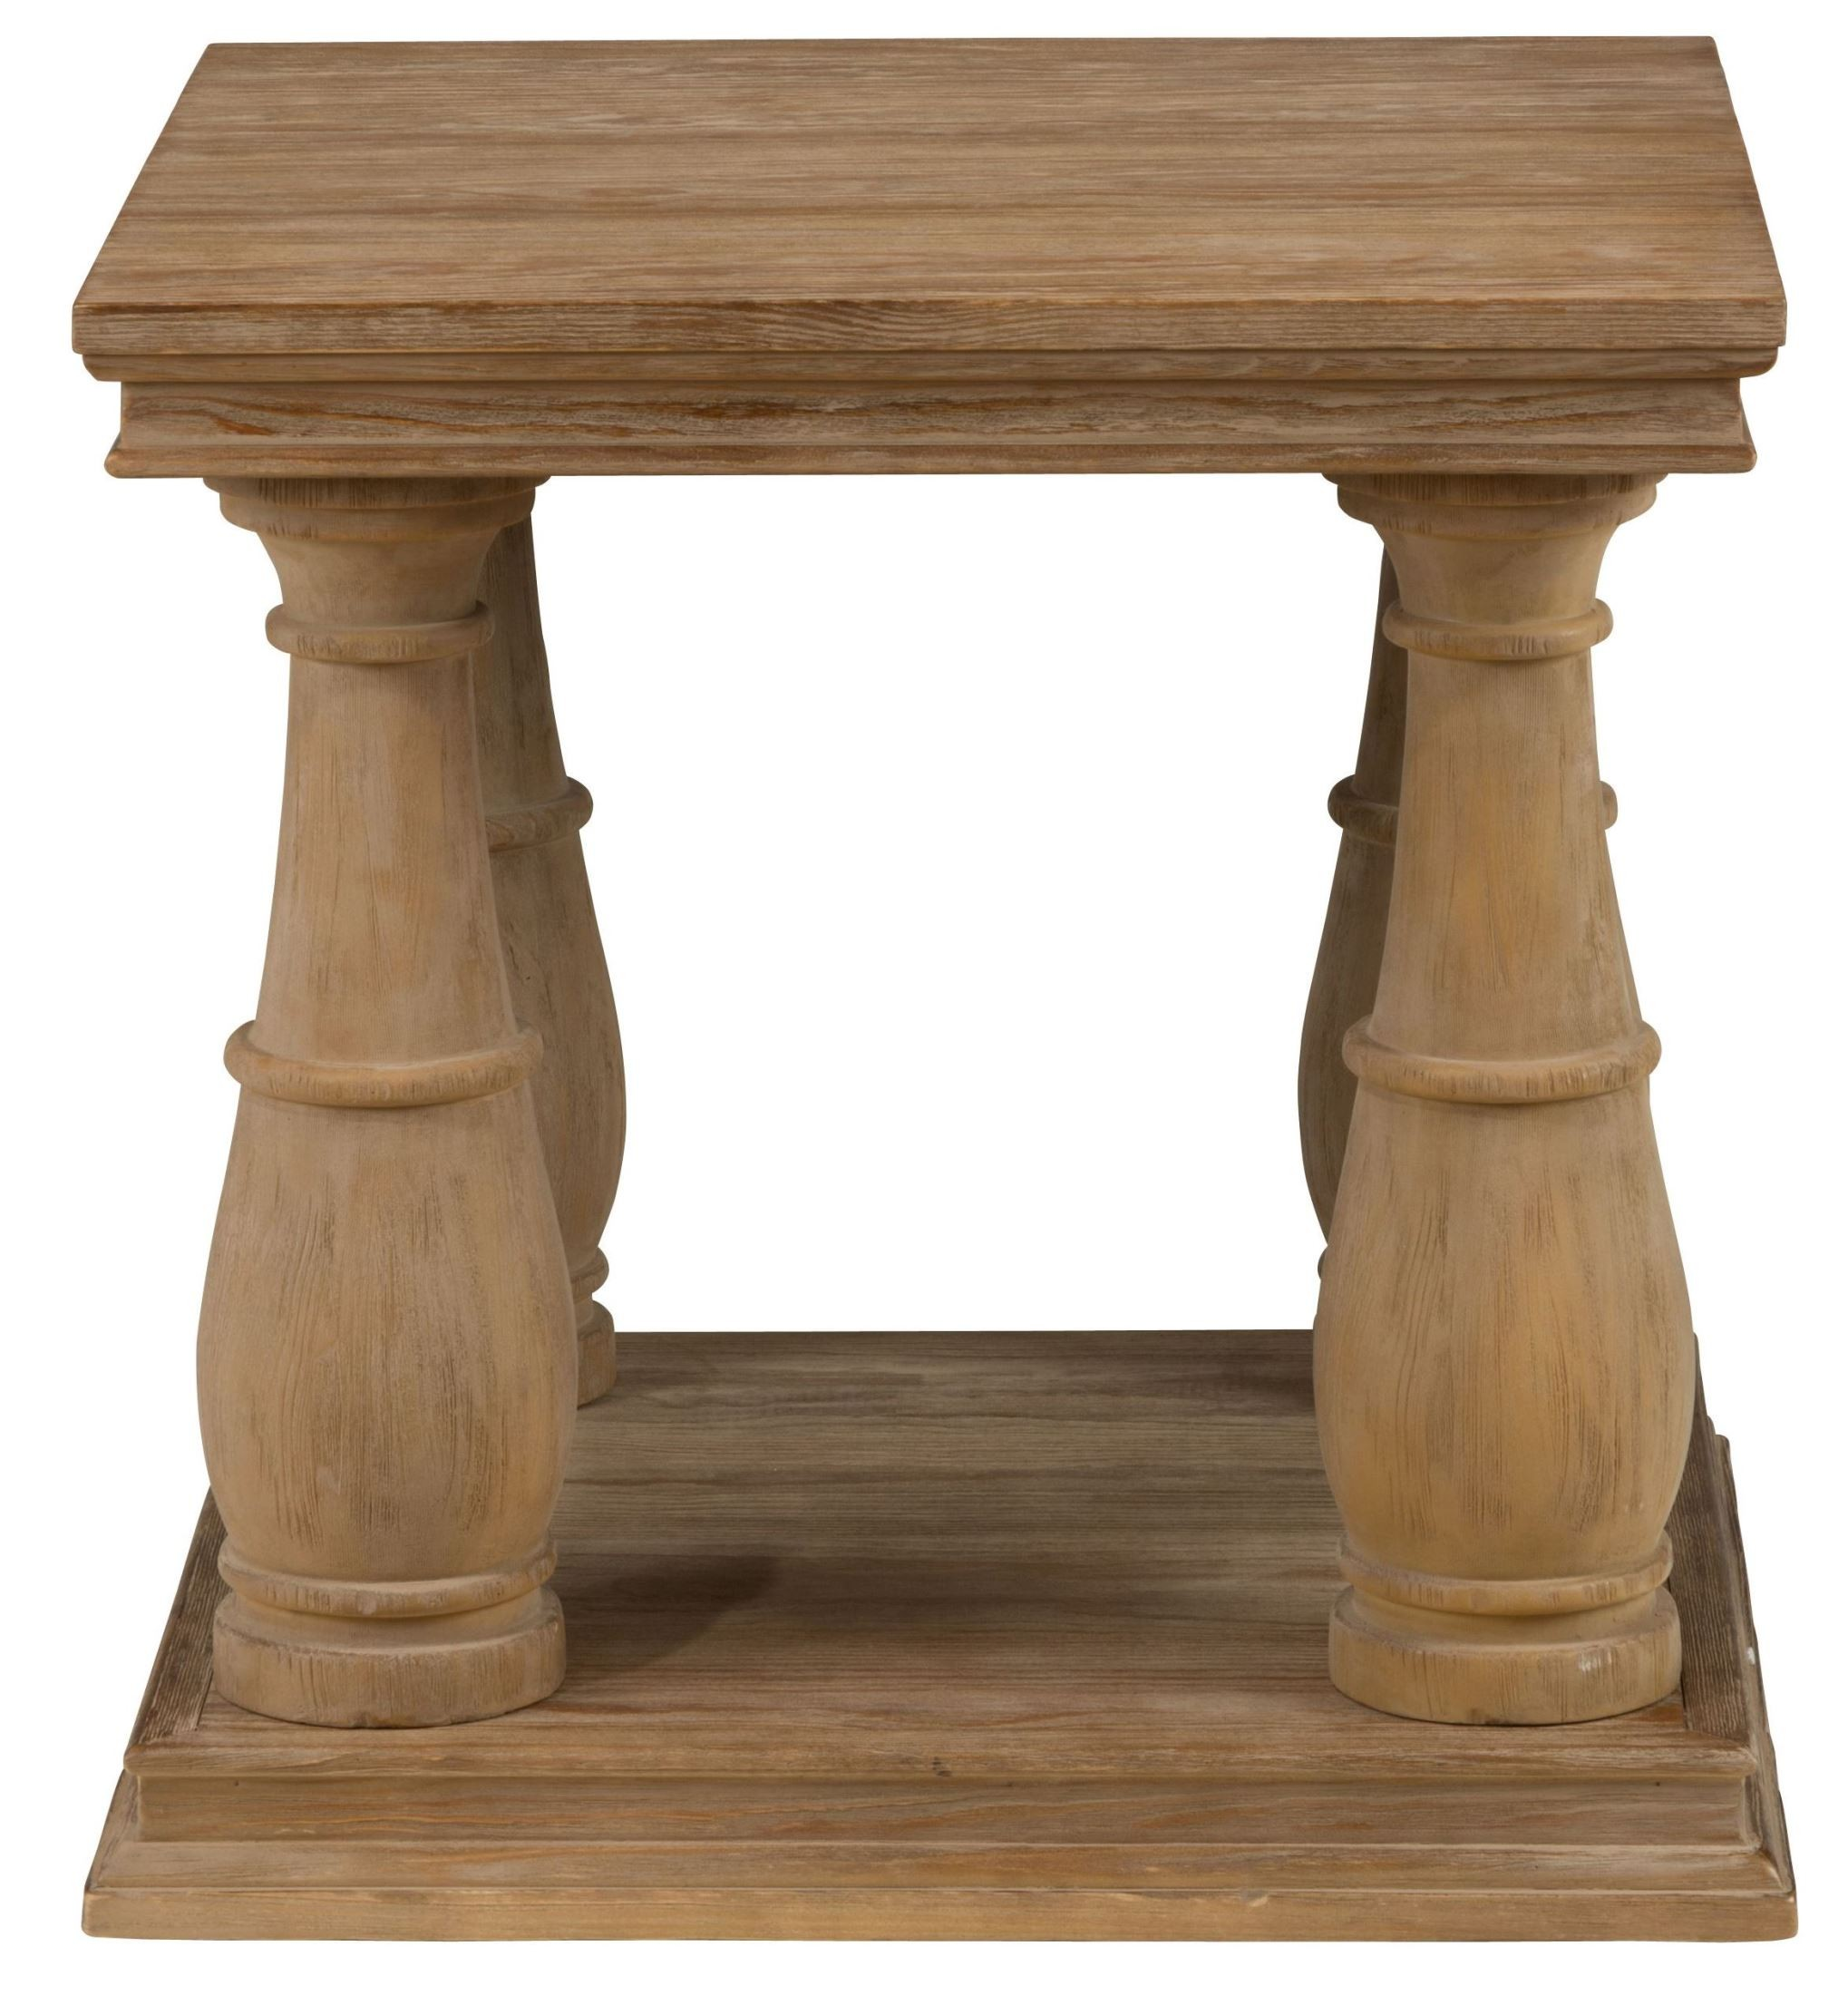 Driftwood End Table: Big Sur Driftwood Brown End Table, 919-3, Jofran